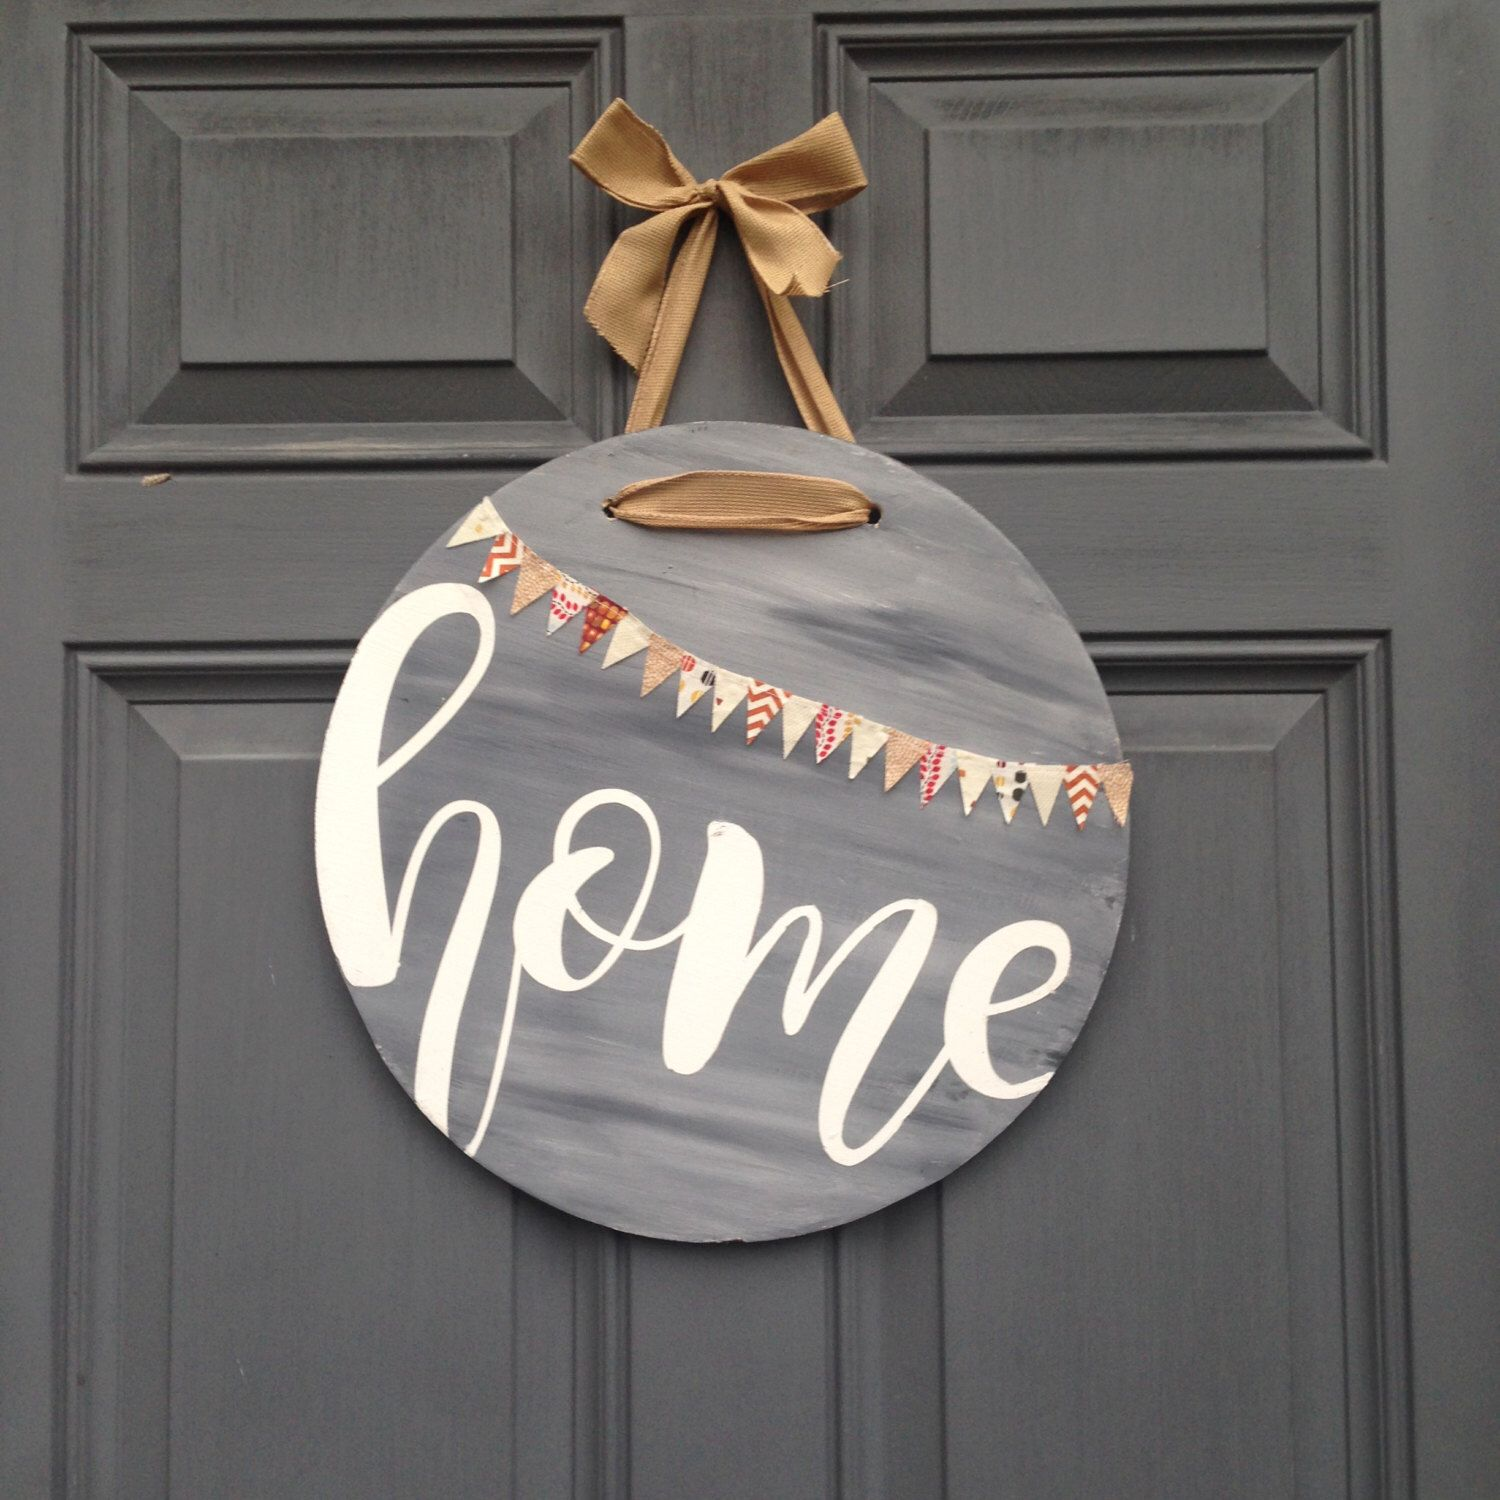 Brown Antique Wood Round Sign Hello Door Sign Hello Sign Rustic Front Door Decorative Round Wood Farmhouse Porch Decoration Home